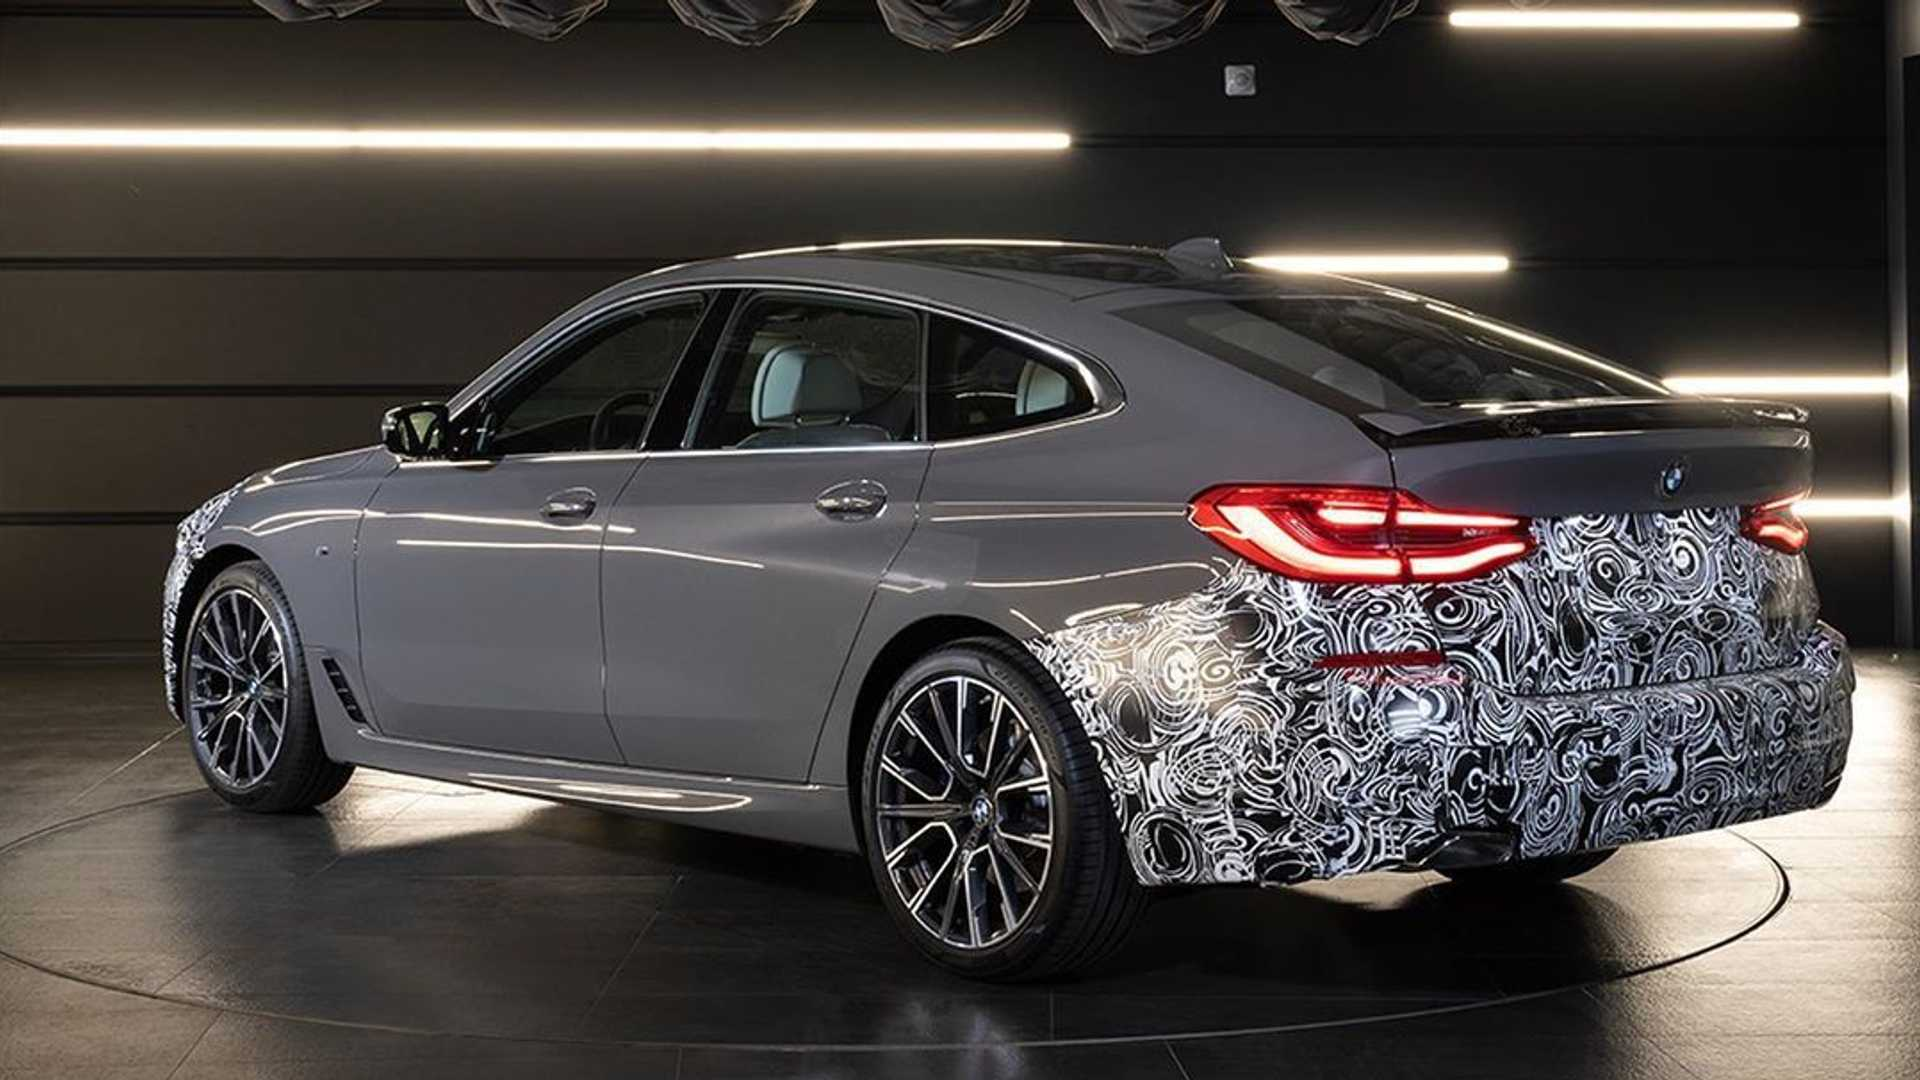 2021 BMW 5 Series, 6 Gran Turismo teaser campaign continues